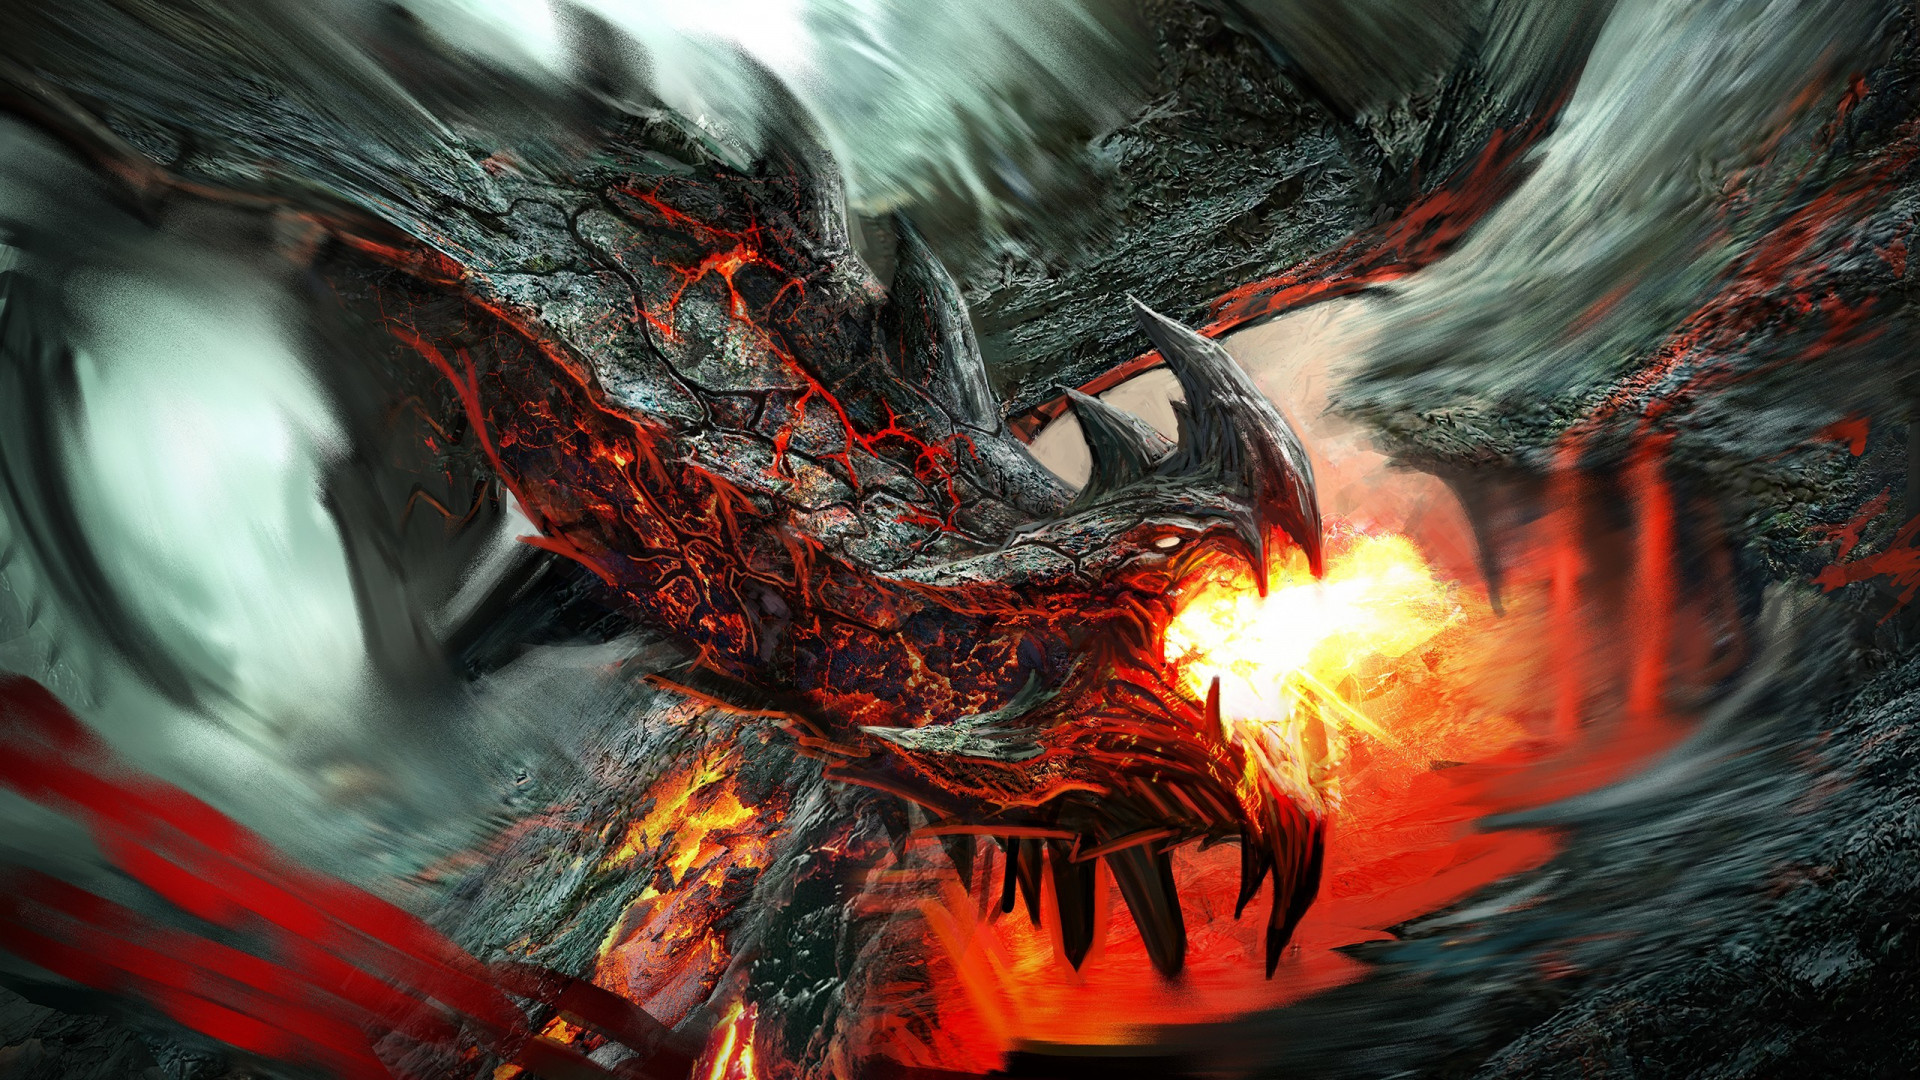 Dragon wallpaper hd 75 images - Dragon backgrounds 1920x1080 ...